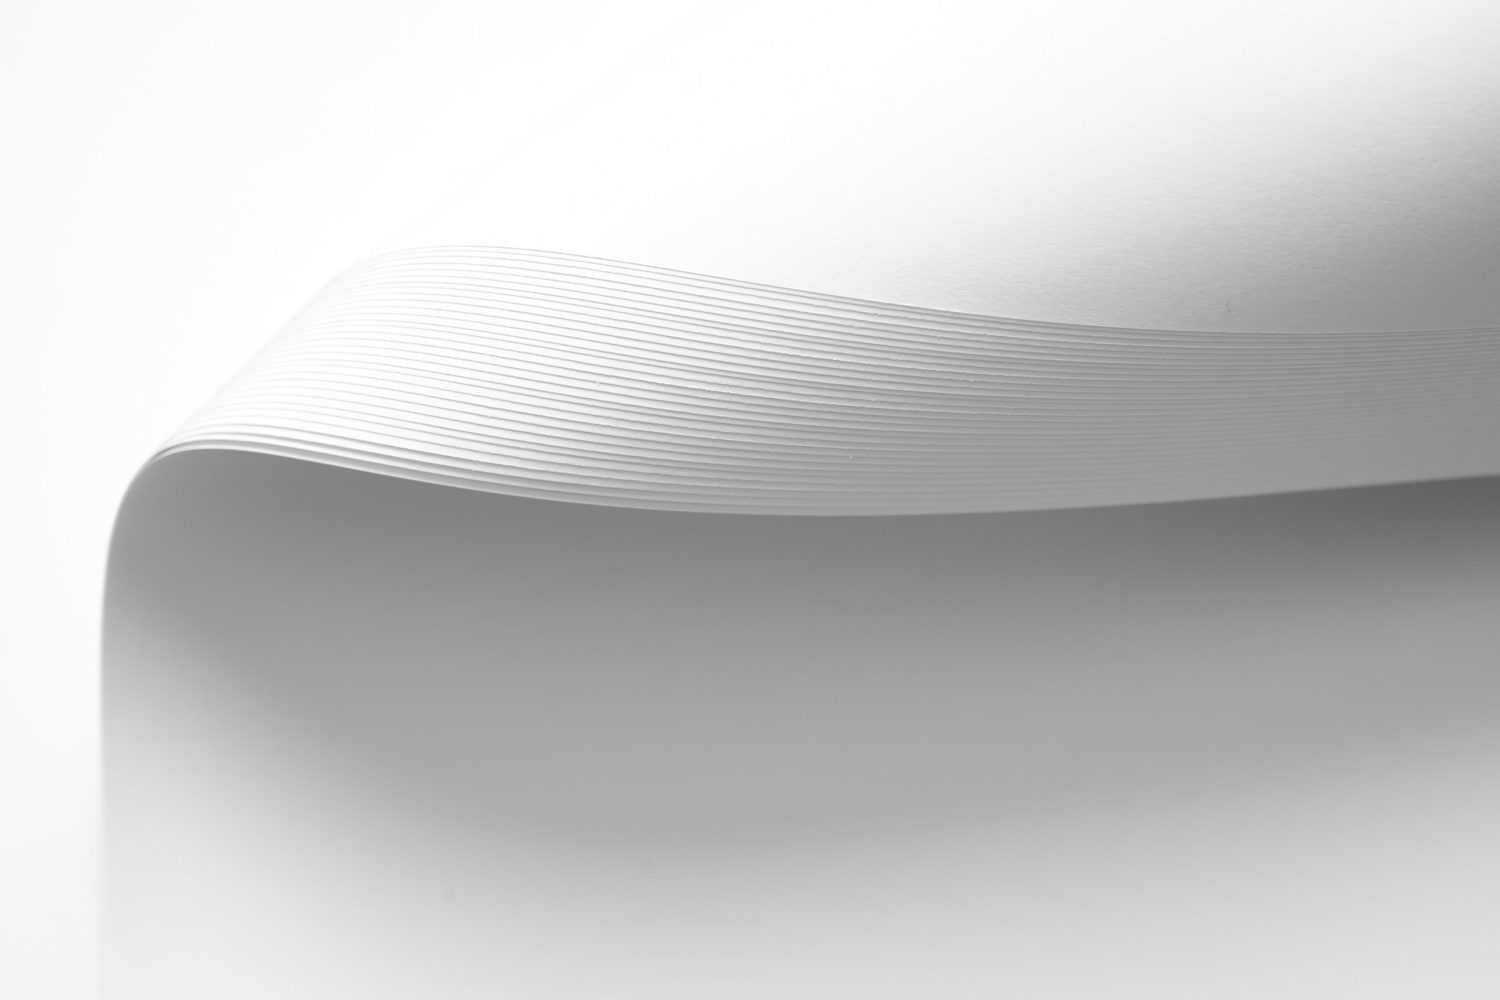 White Sheet Of Paper With Curved Corner